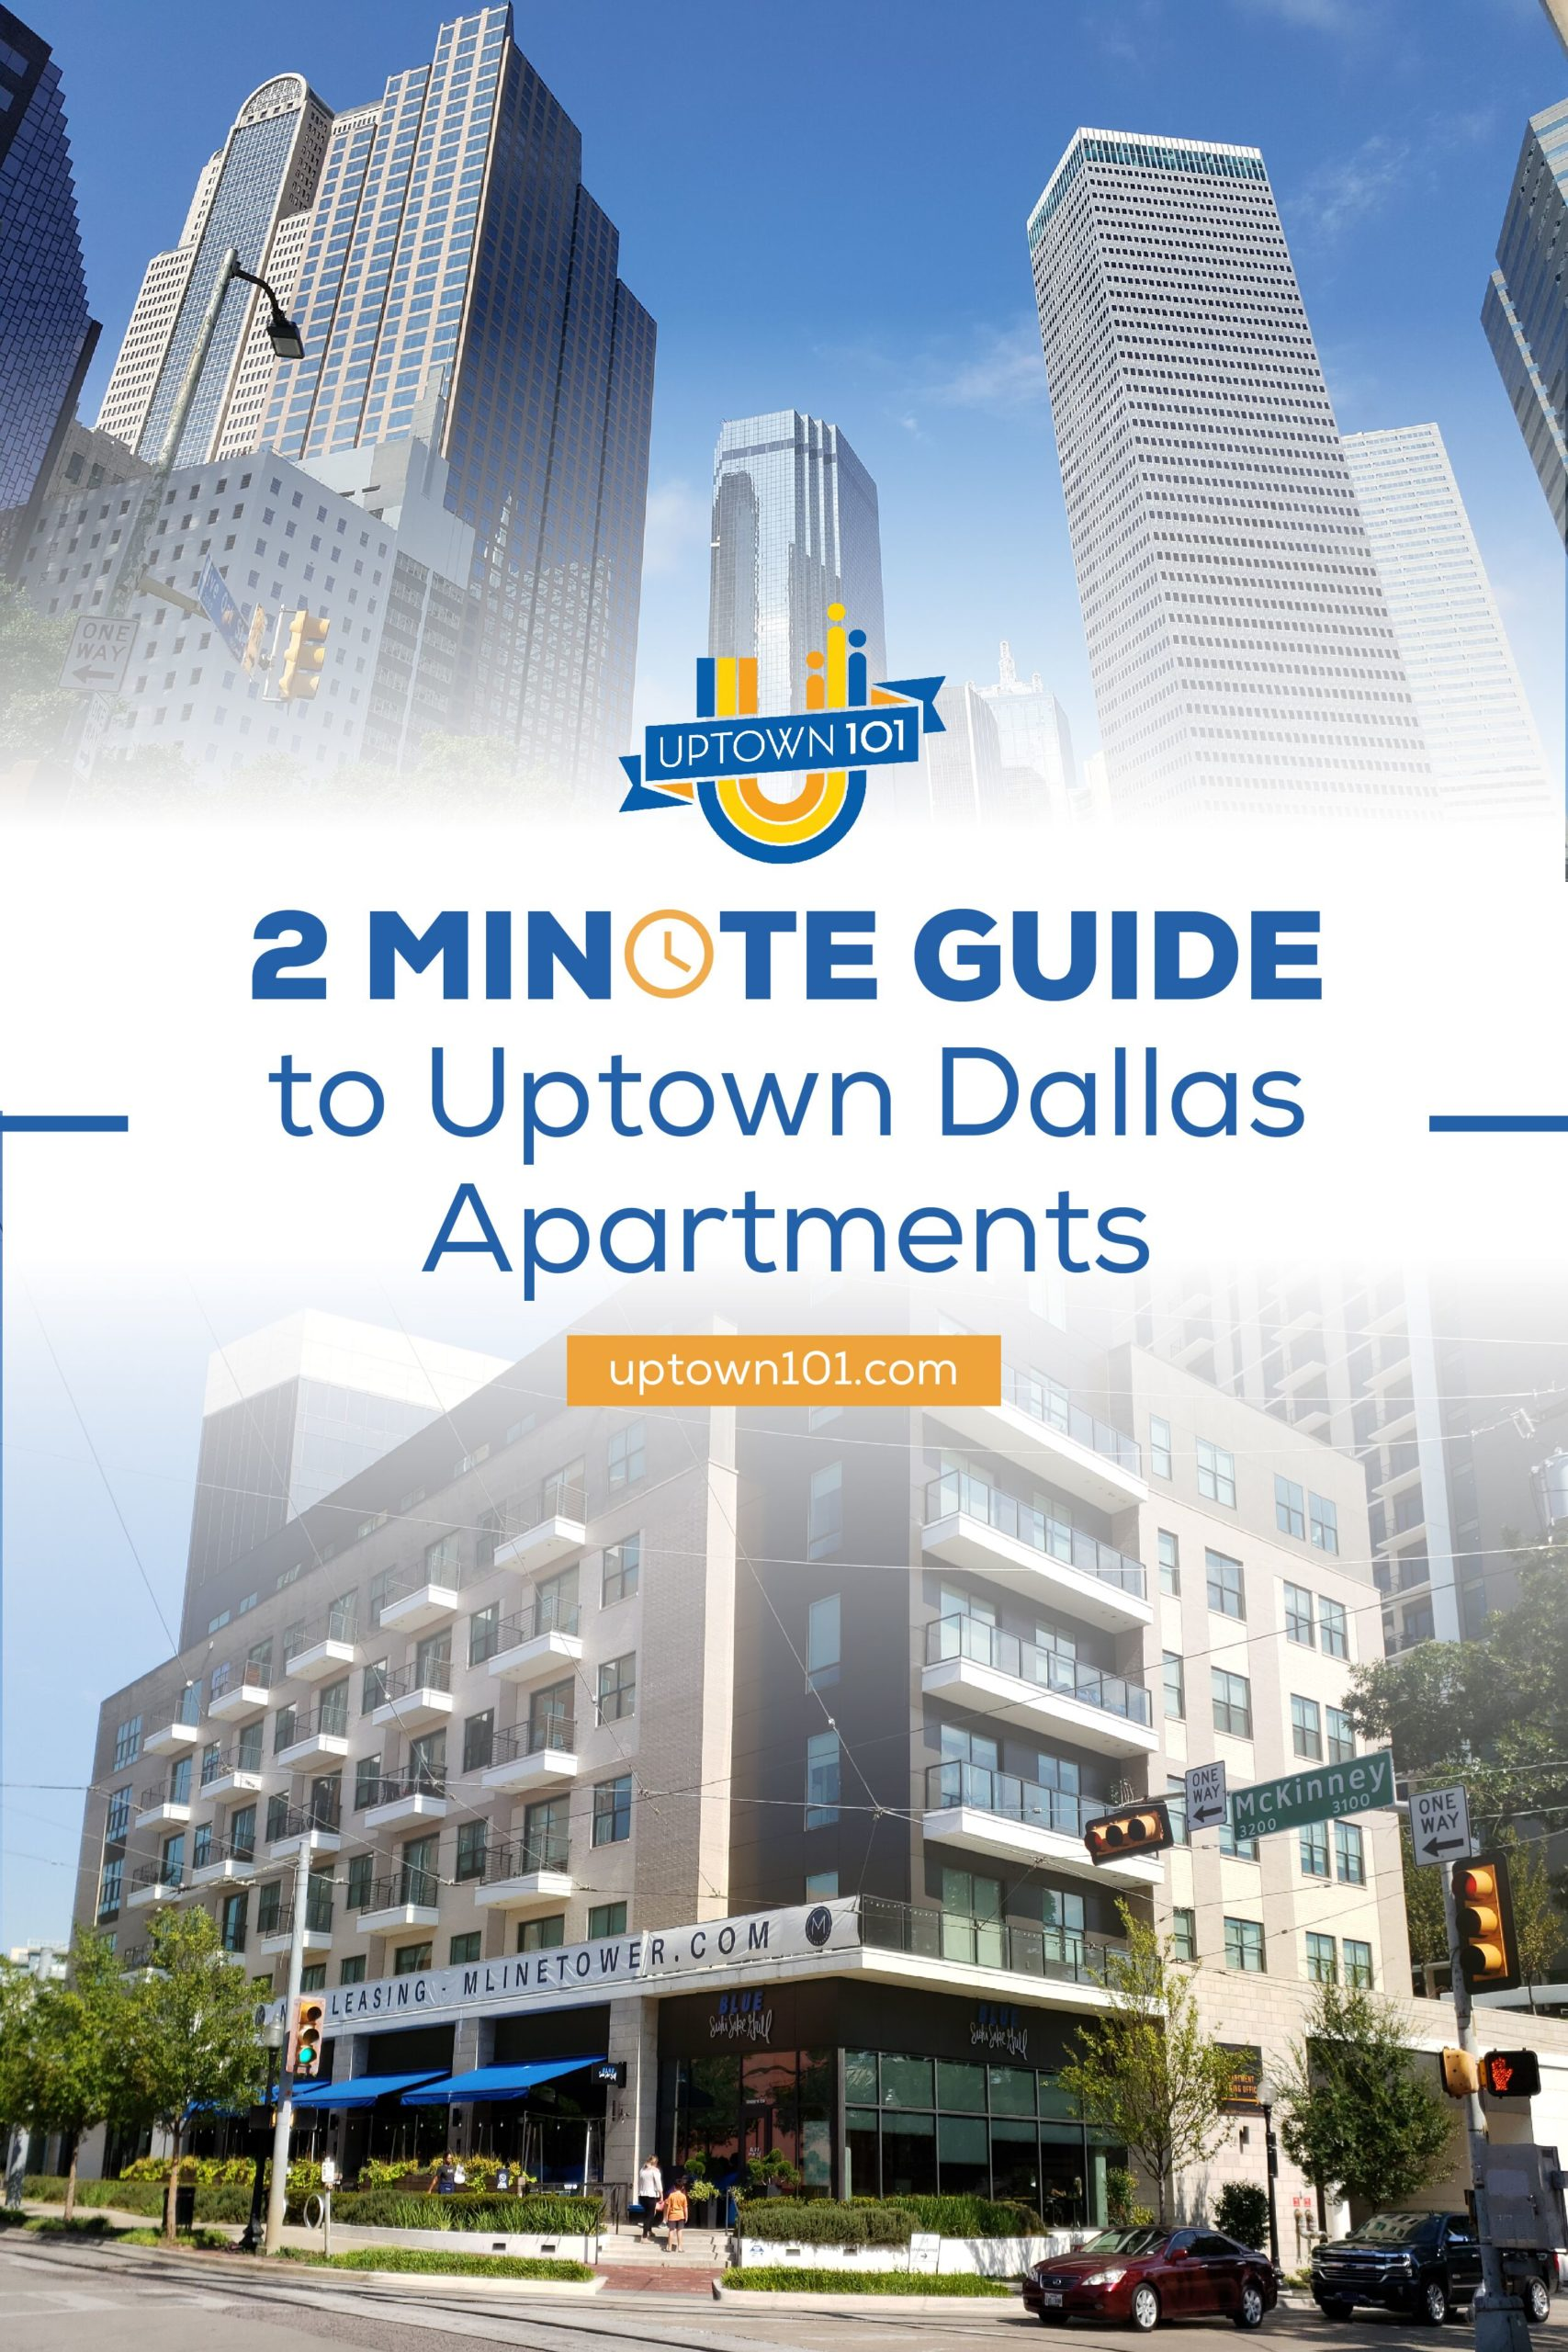 2 minute guide to uptown dallas apartments